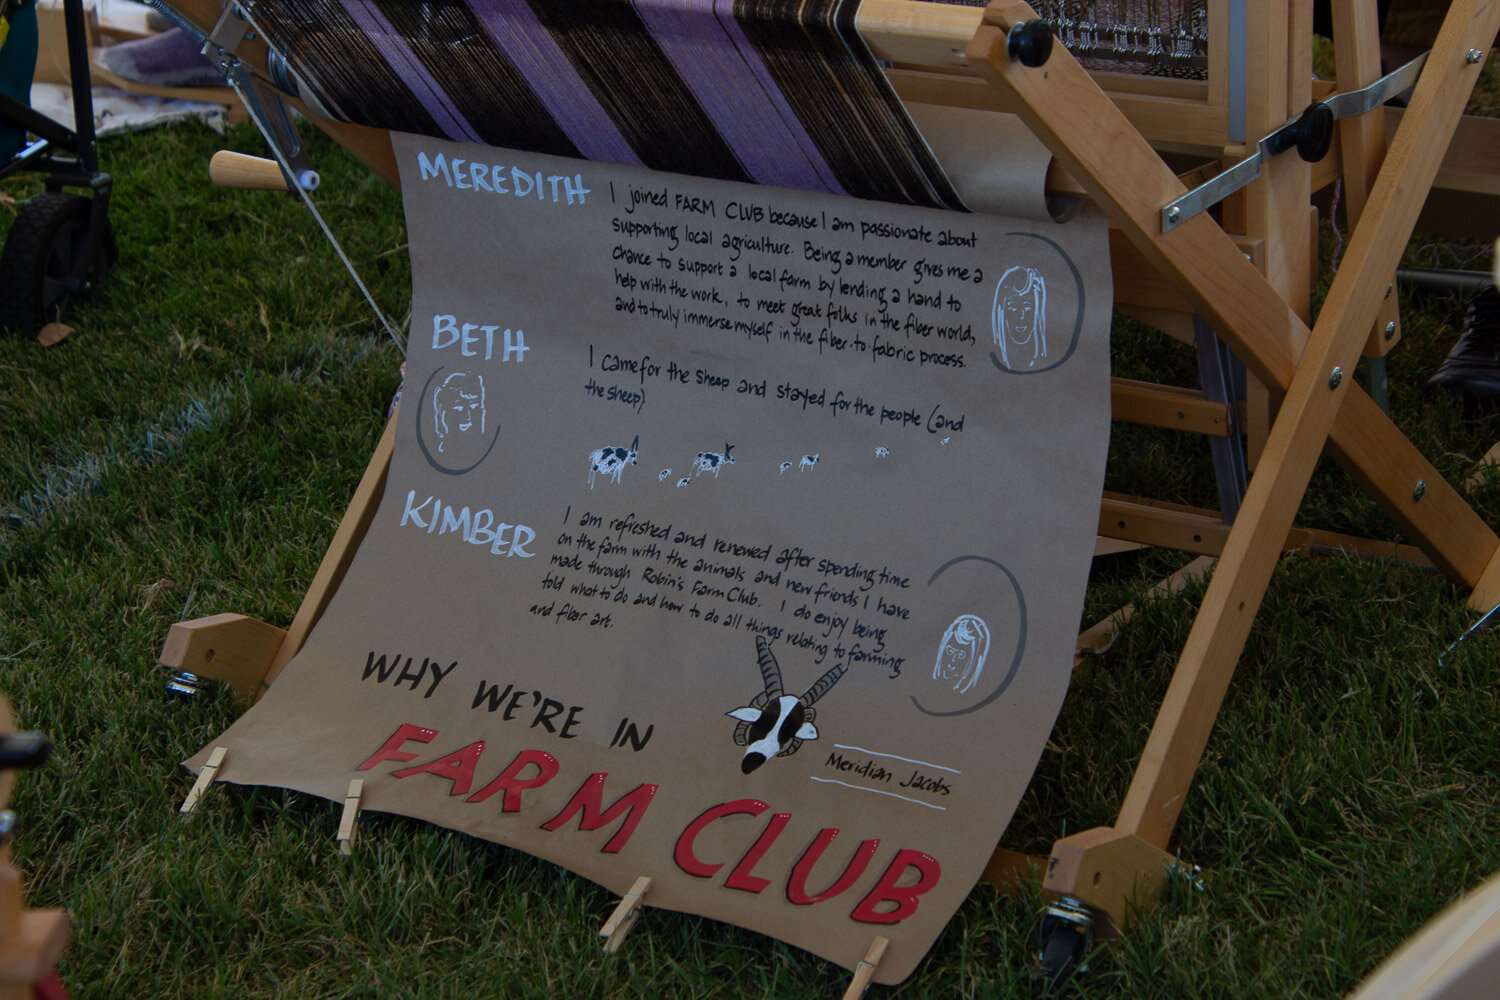 Farm club message at sheep to shawl contest.